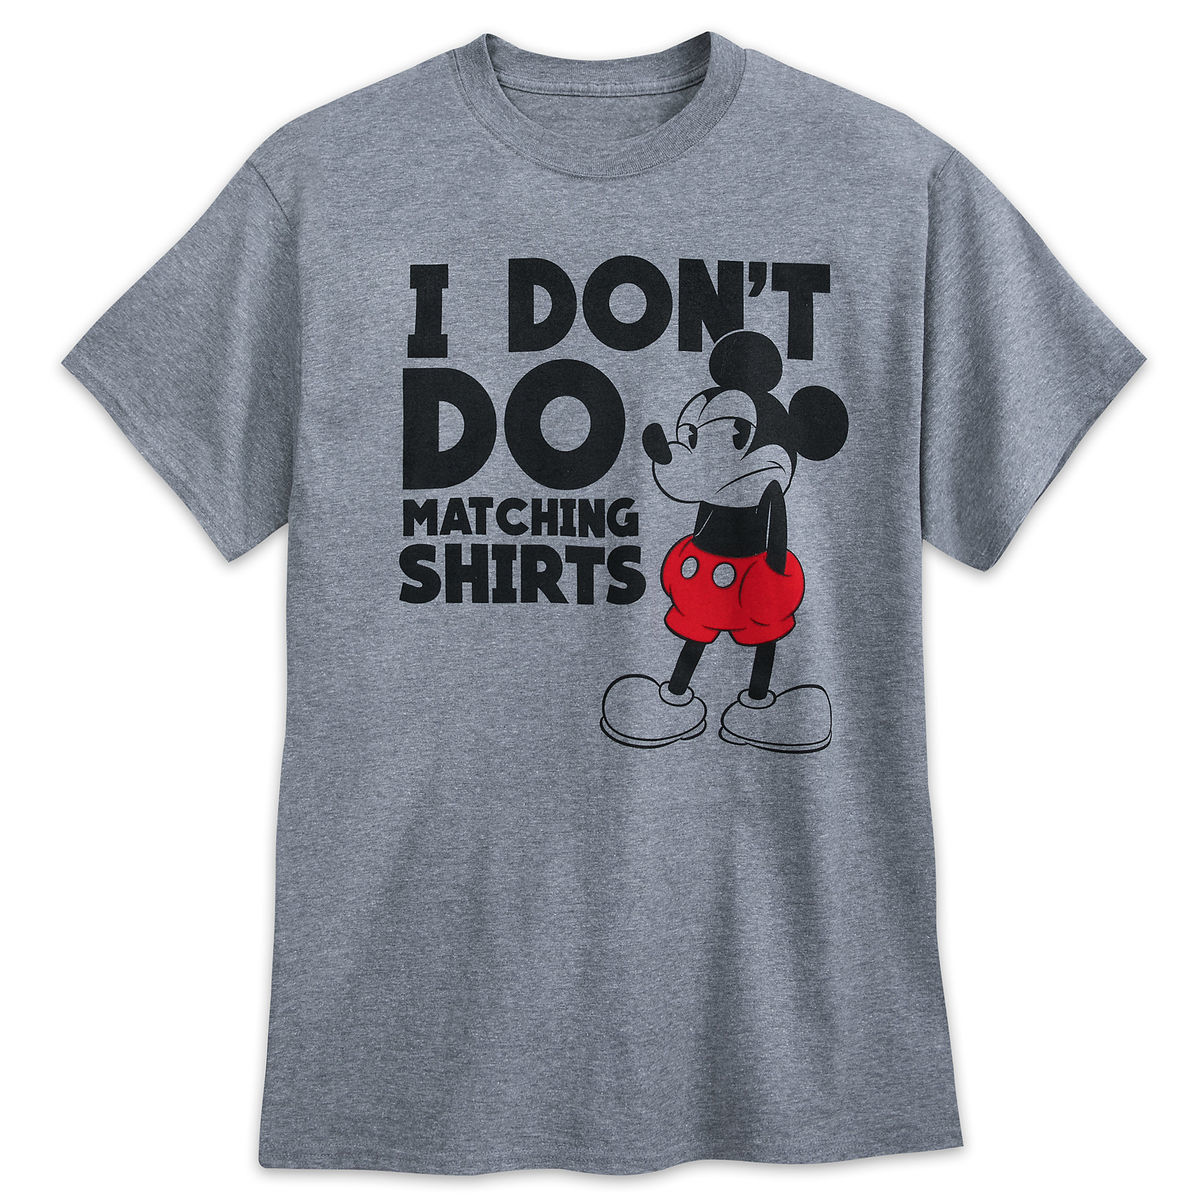 5538f14a8 Disney T-Shirt for Adults - Mickey Mouse - I Don't Do Matching Shirts